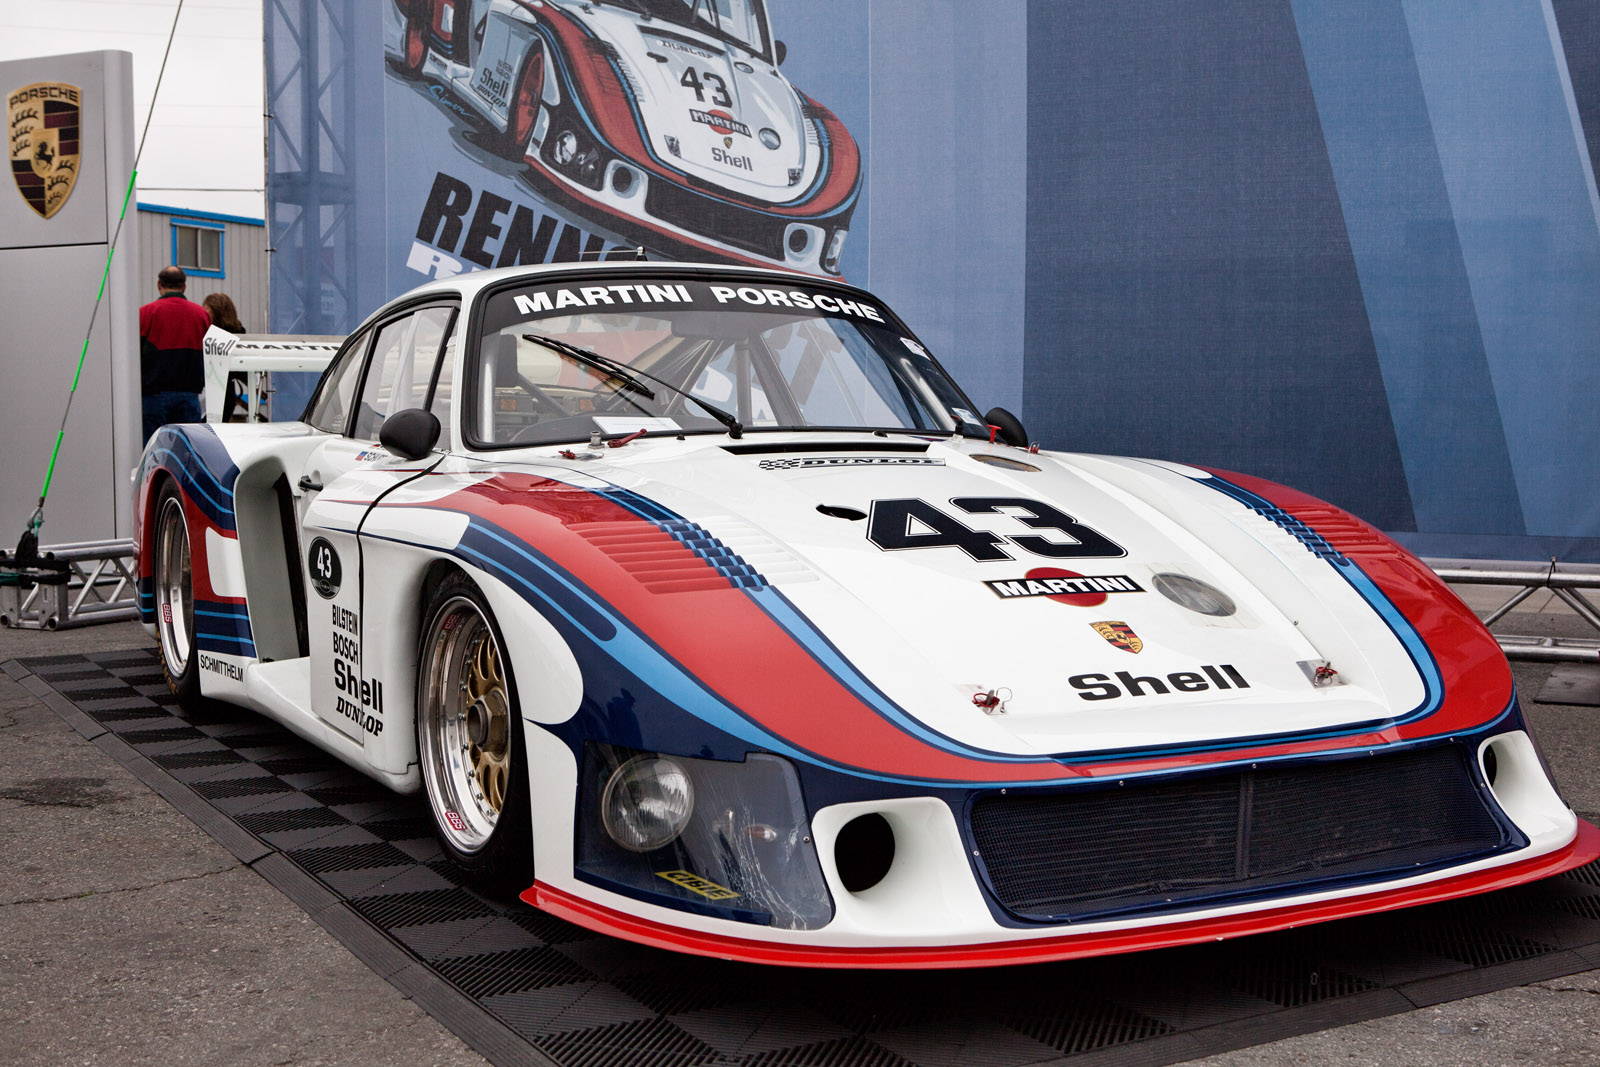 hight resolution of the original porsche 935 78 moby dick in martini racing livery at the porsche rennsport reunion iv